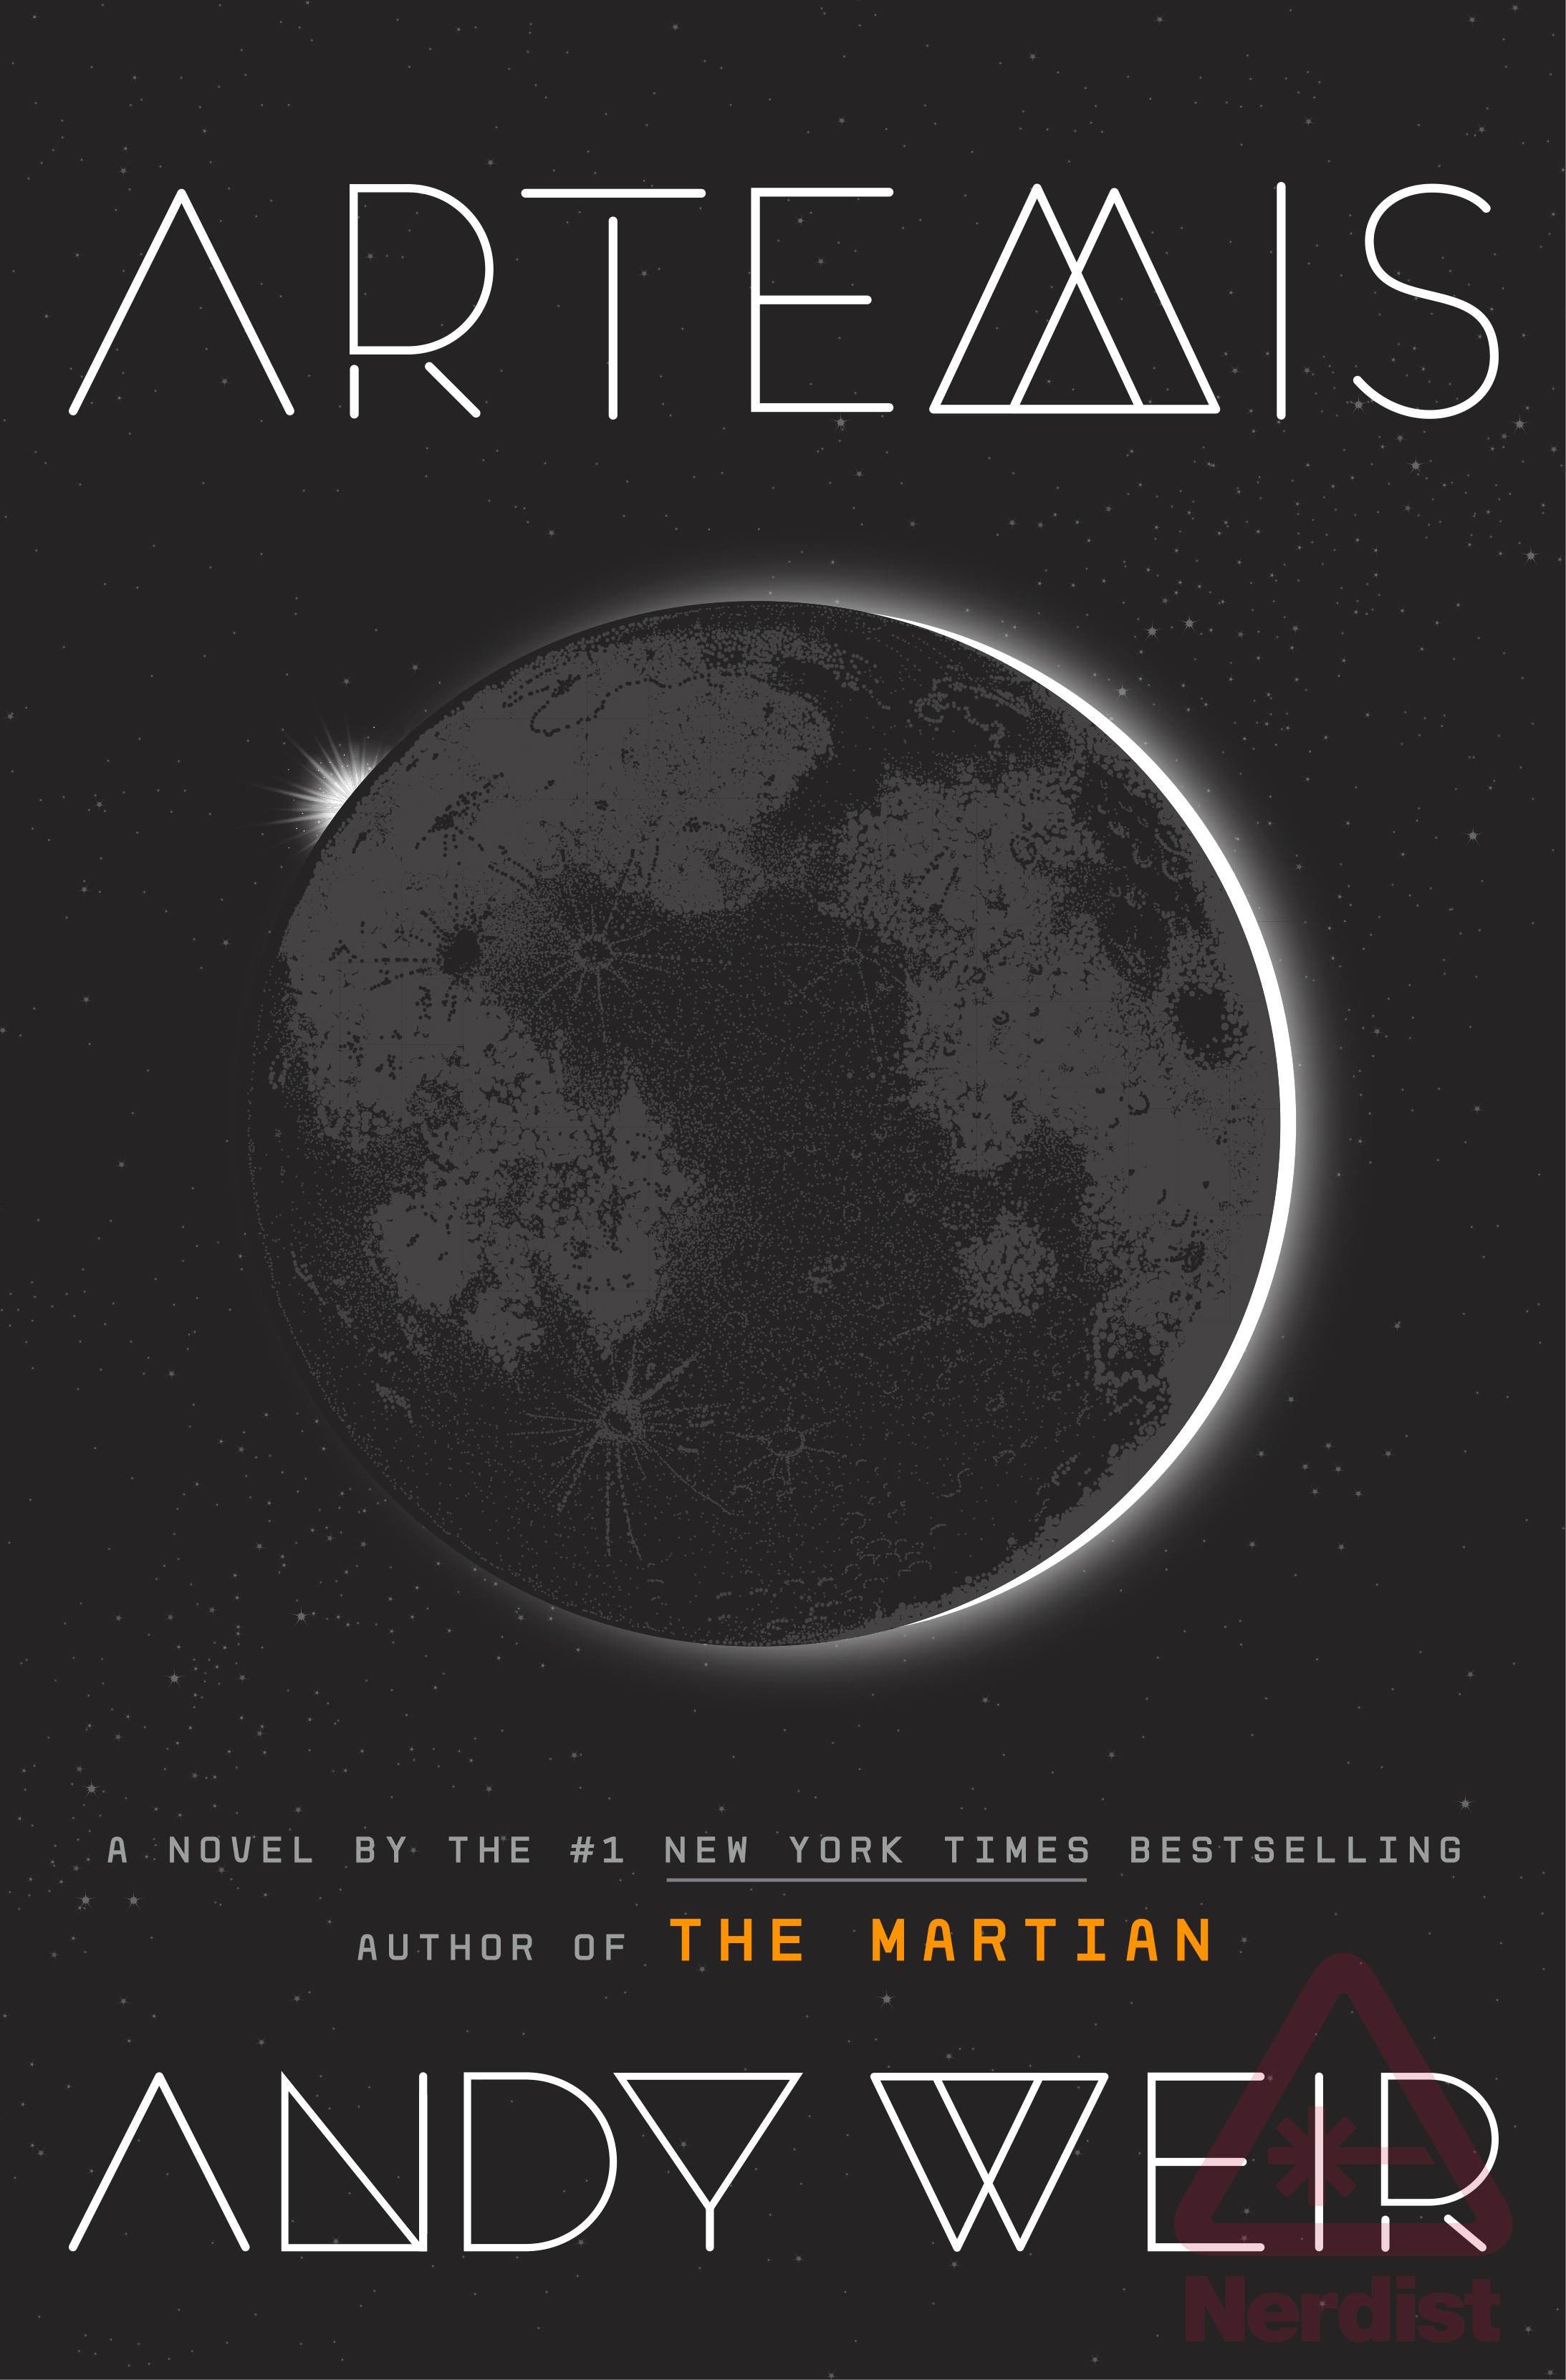 Artemis by Andy Weir book cover